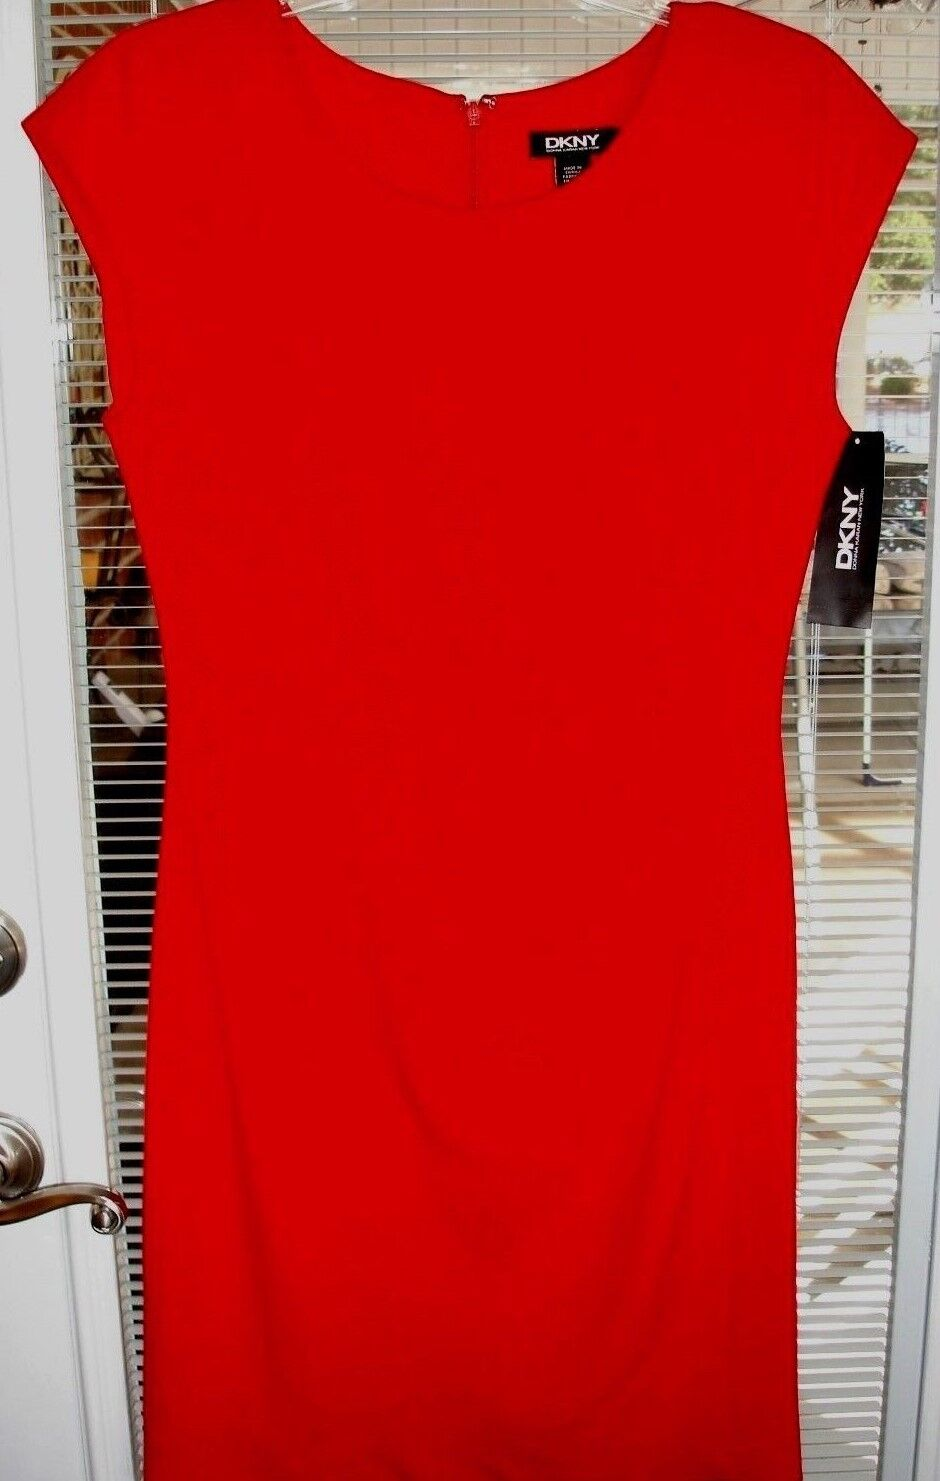 women KARAN Solid Red Sleeveless Dress  Womens Size 6 Classic Style New